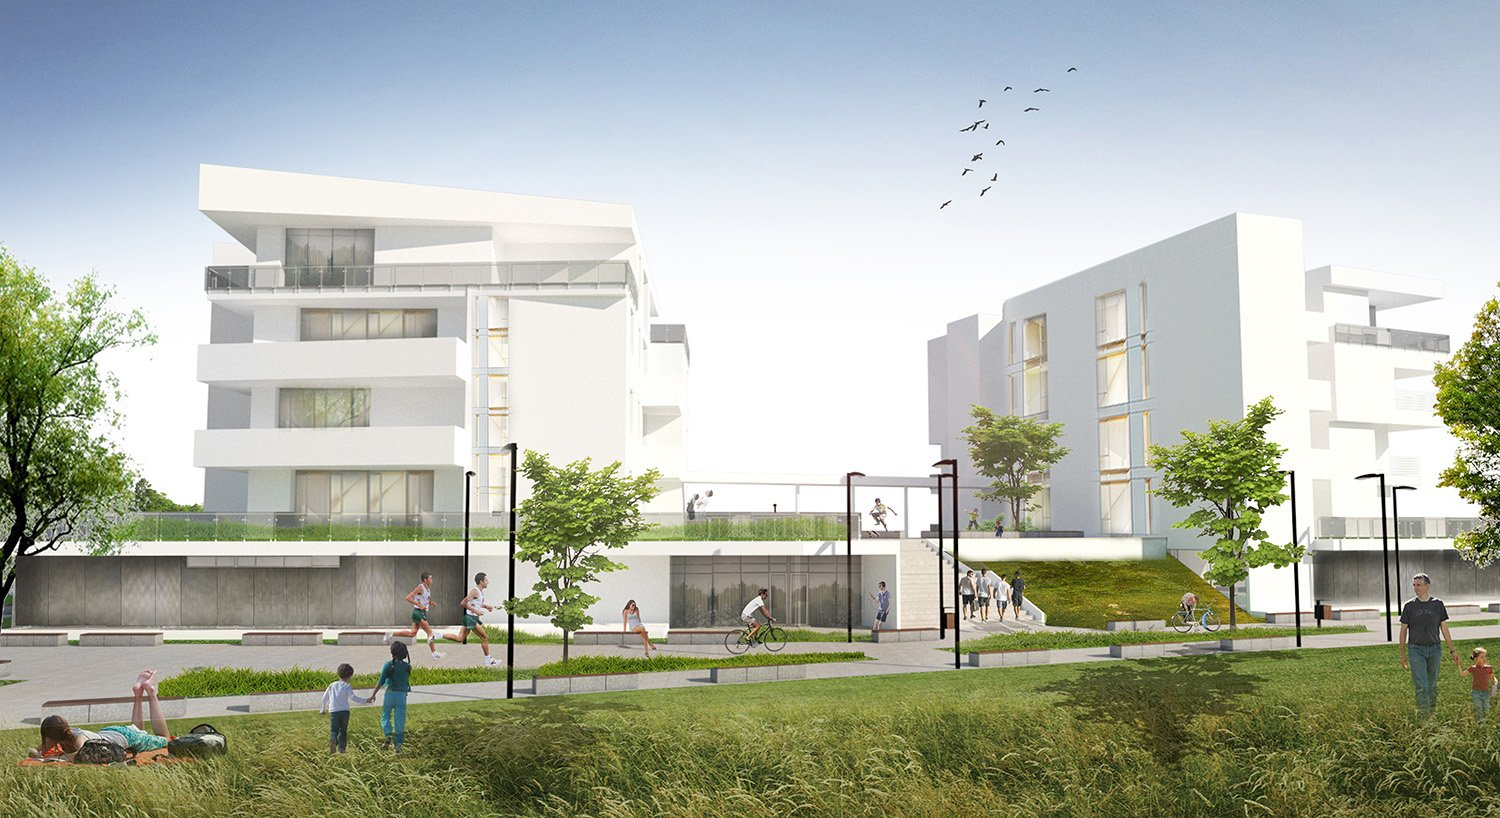 Render_Esterni_Area pedonale photo © 2019 by GBA Studio srl / Gianluca Brini - Architetto Bologna - Via Andrea Costa 202/2 http://www.gbastudio.it/